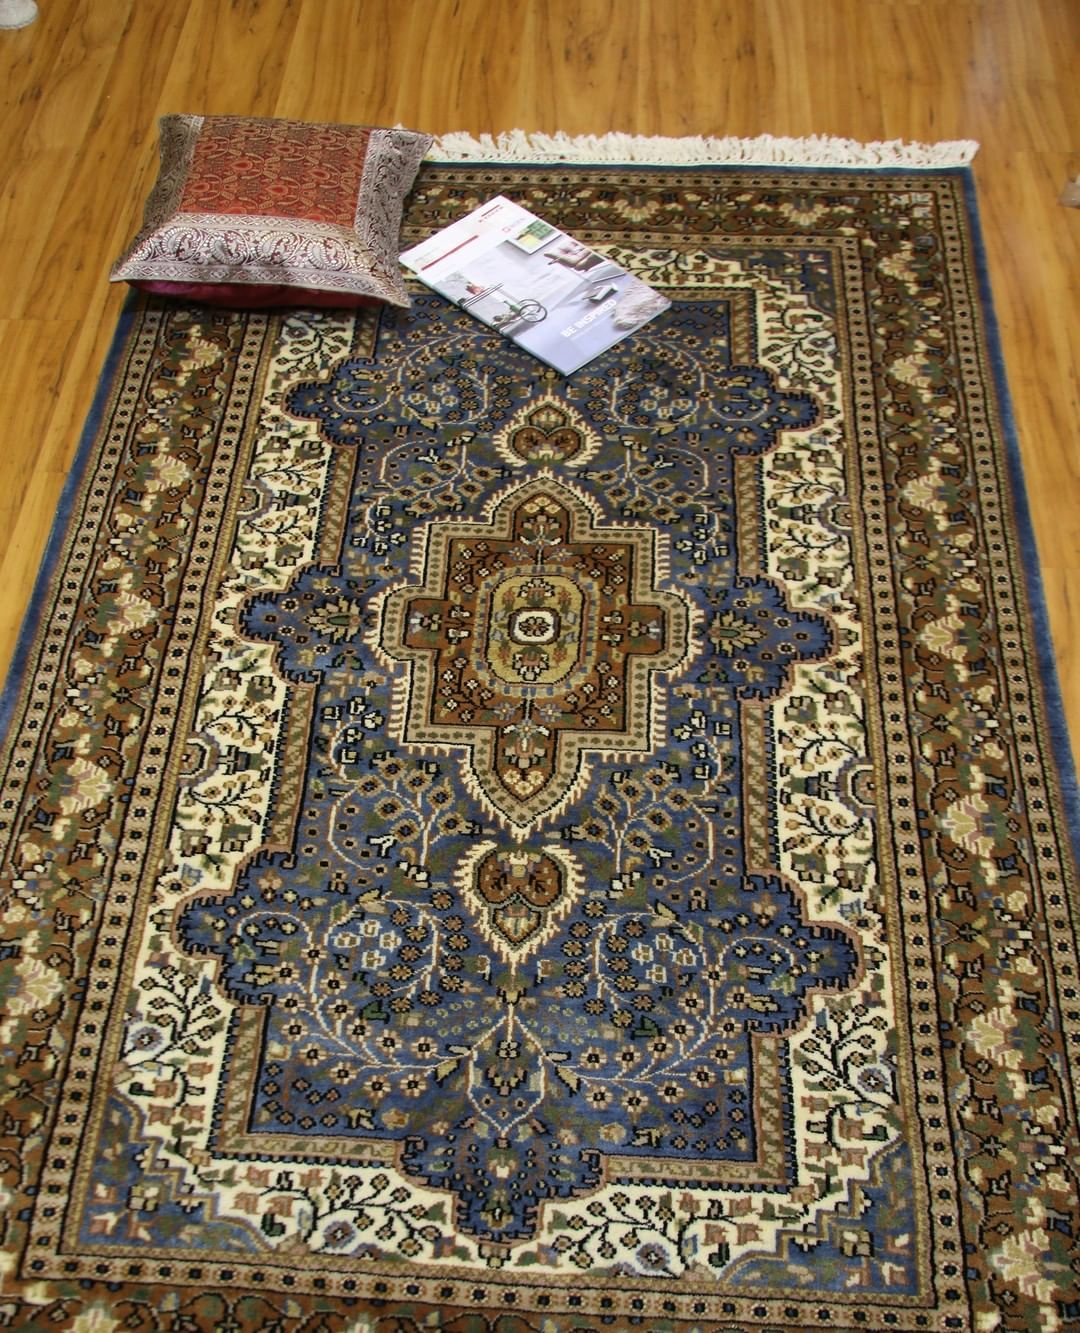 Nomads Loom Dallas 60779 Advisor In 2020 Rugs Quality Area Rugs Rug Store